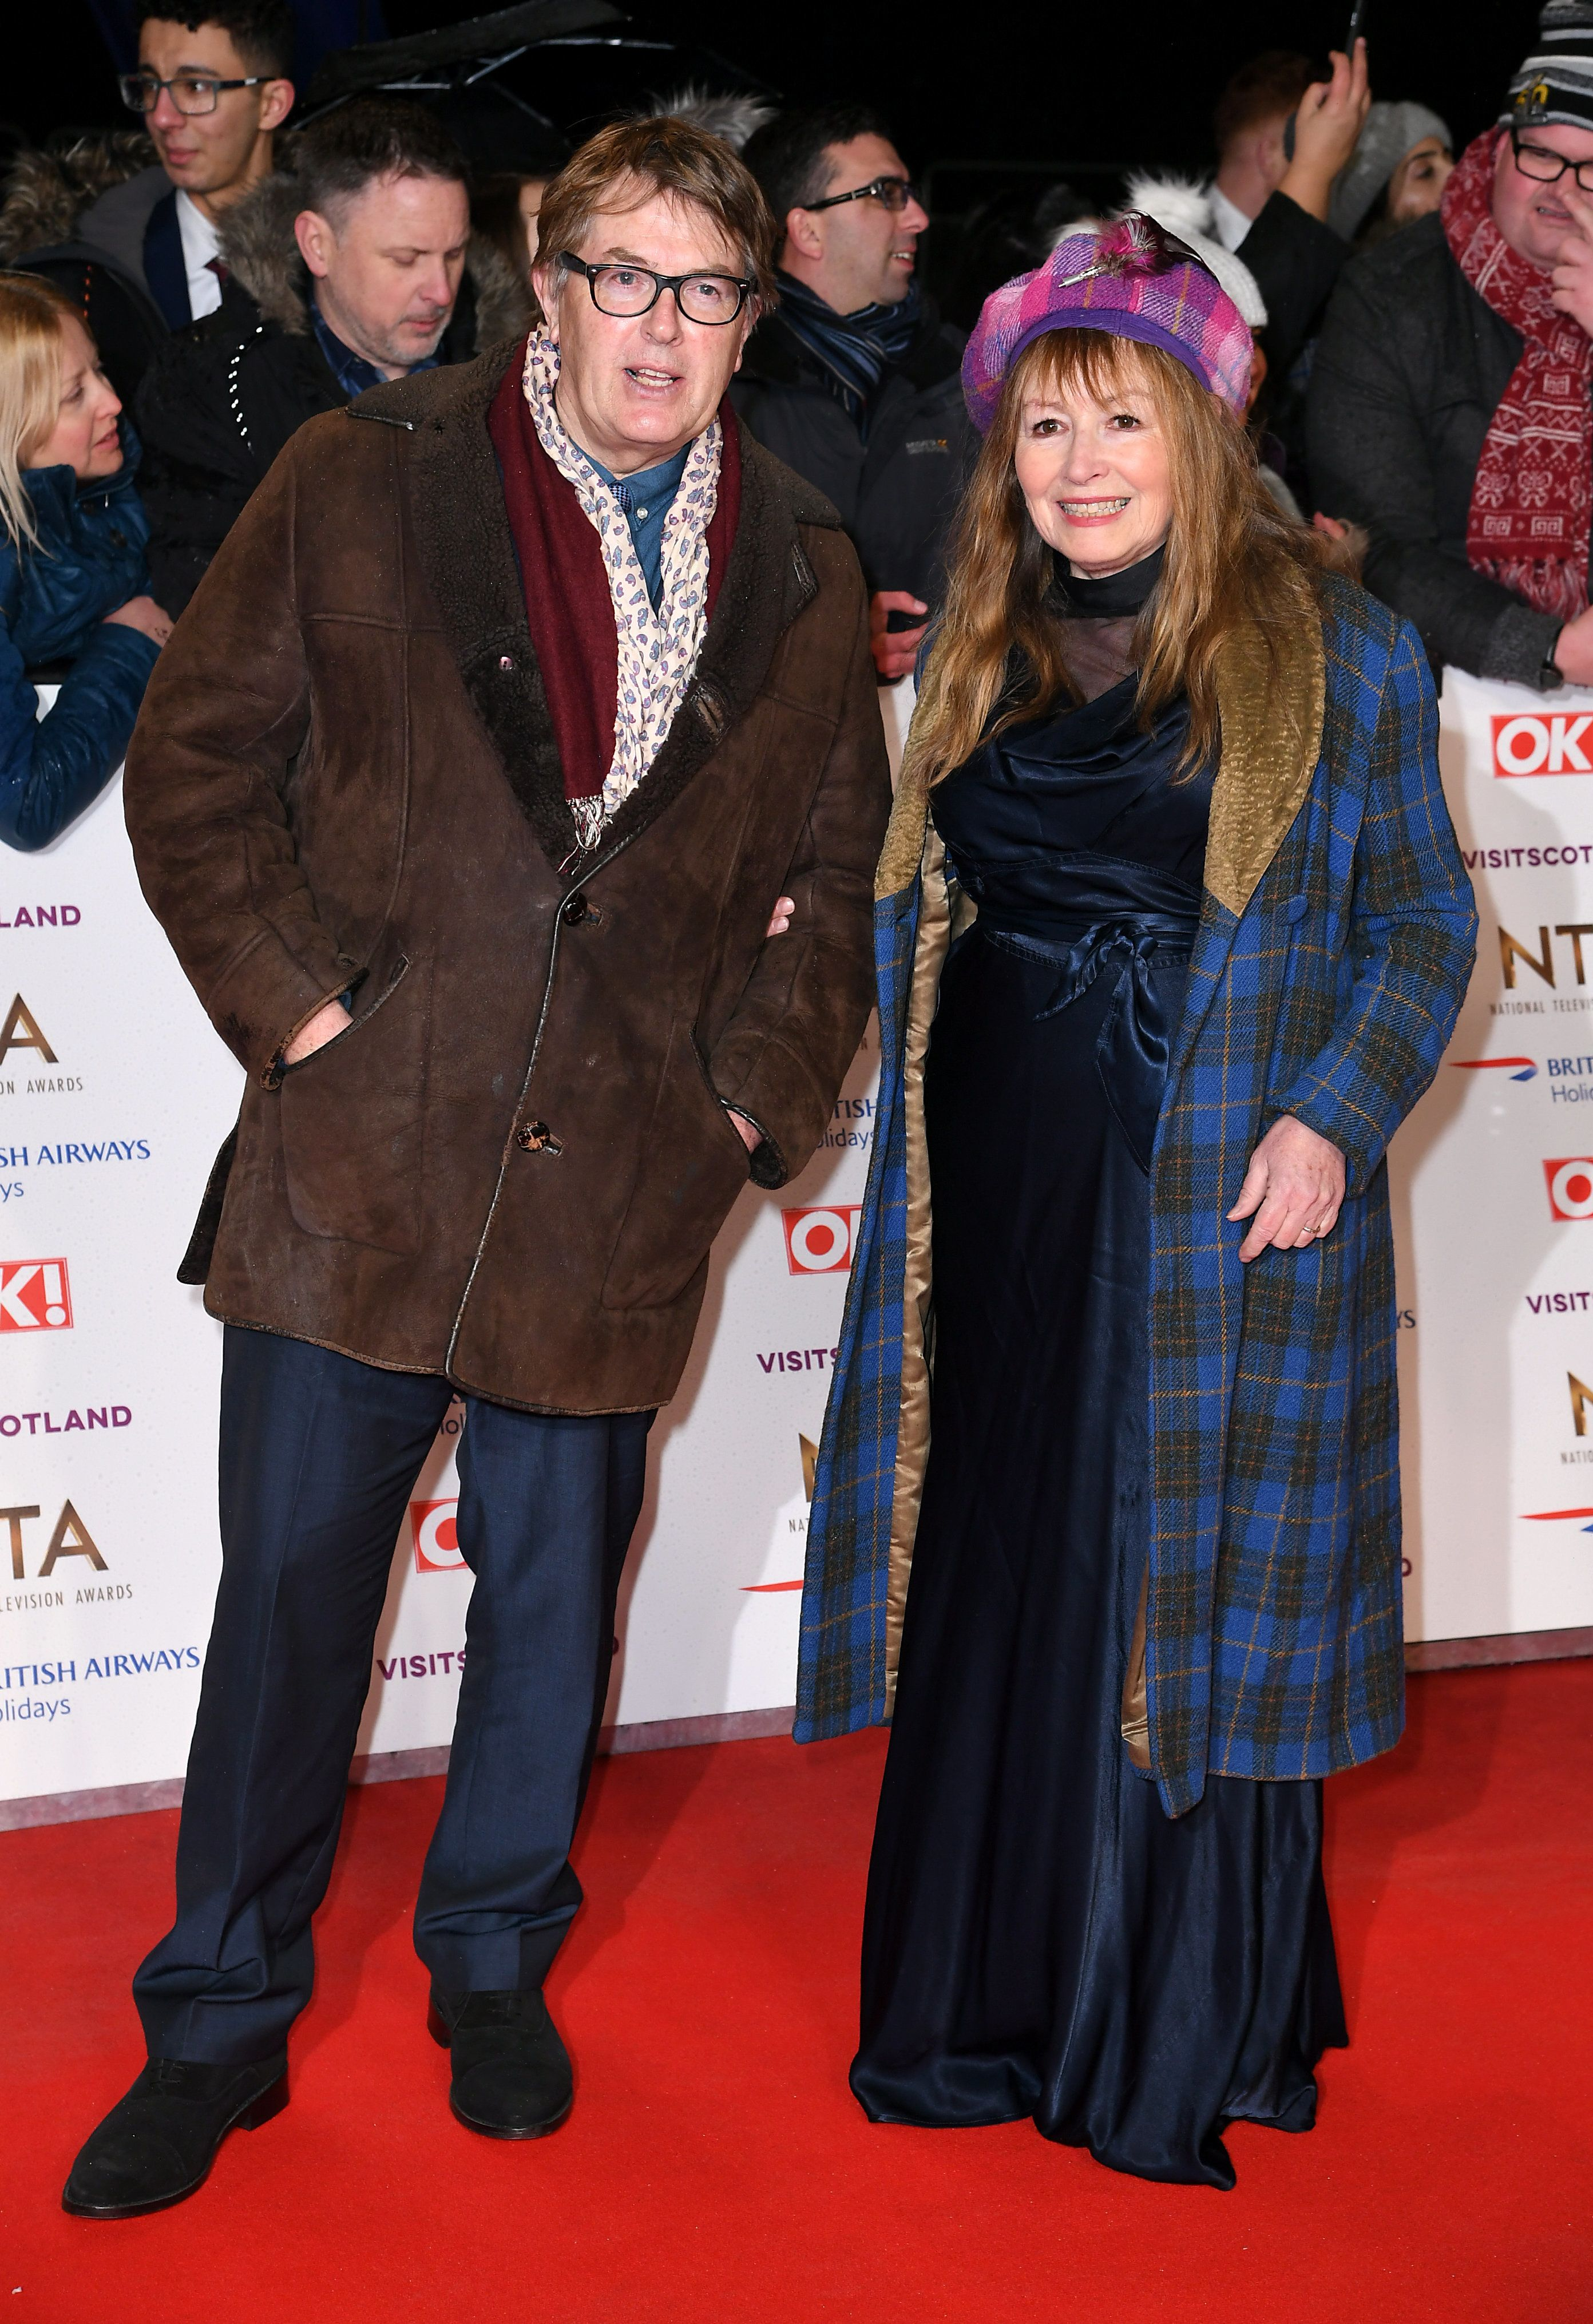 NTA Awards 2019: Giles And Mary From 'Gogglebox' Serve Looks On The Red Carpet And We're Nutty For